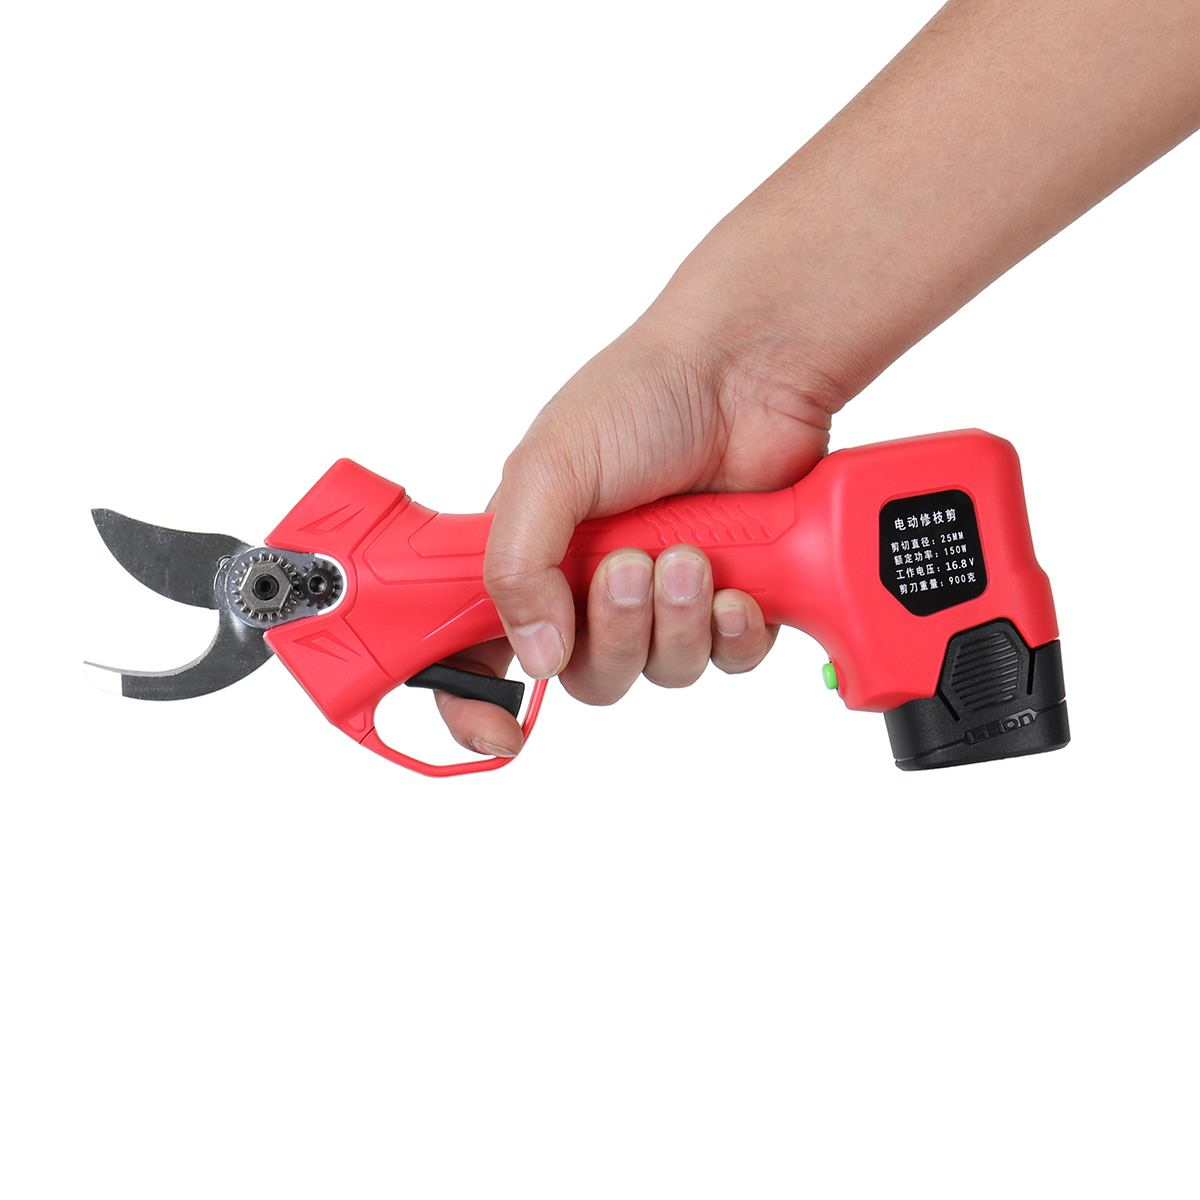 Wireless 16.8V 25mm Electric Garden Scissor for Brach Pruning with Li-ion Battery and USB Charger 14